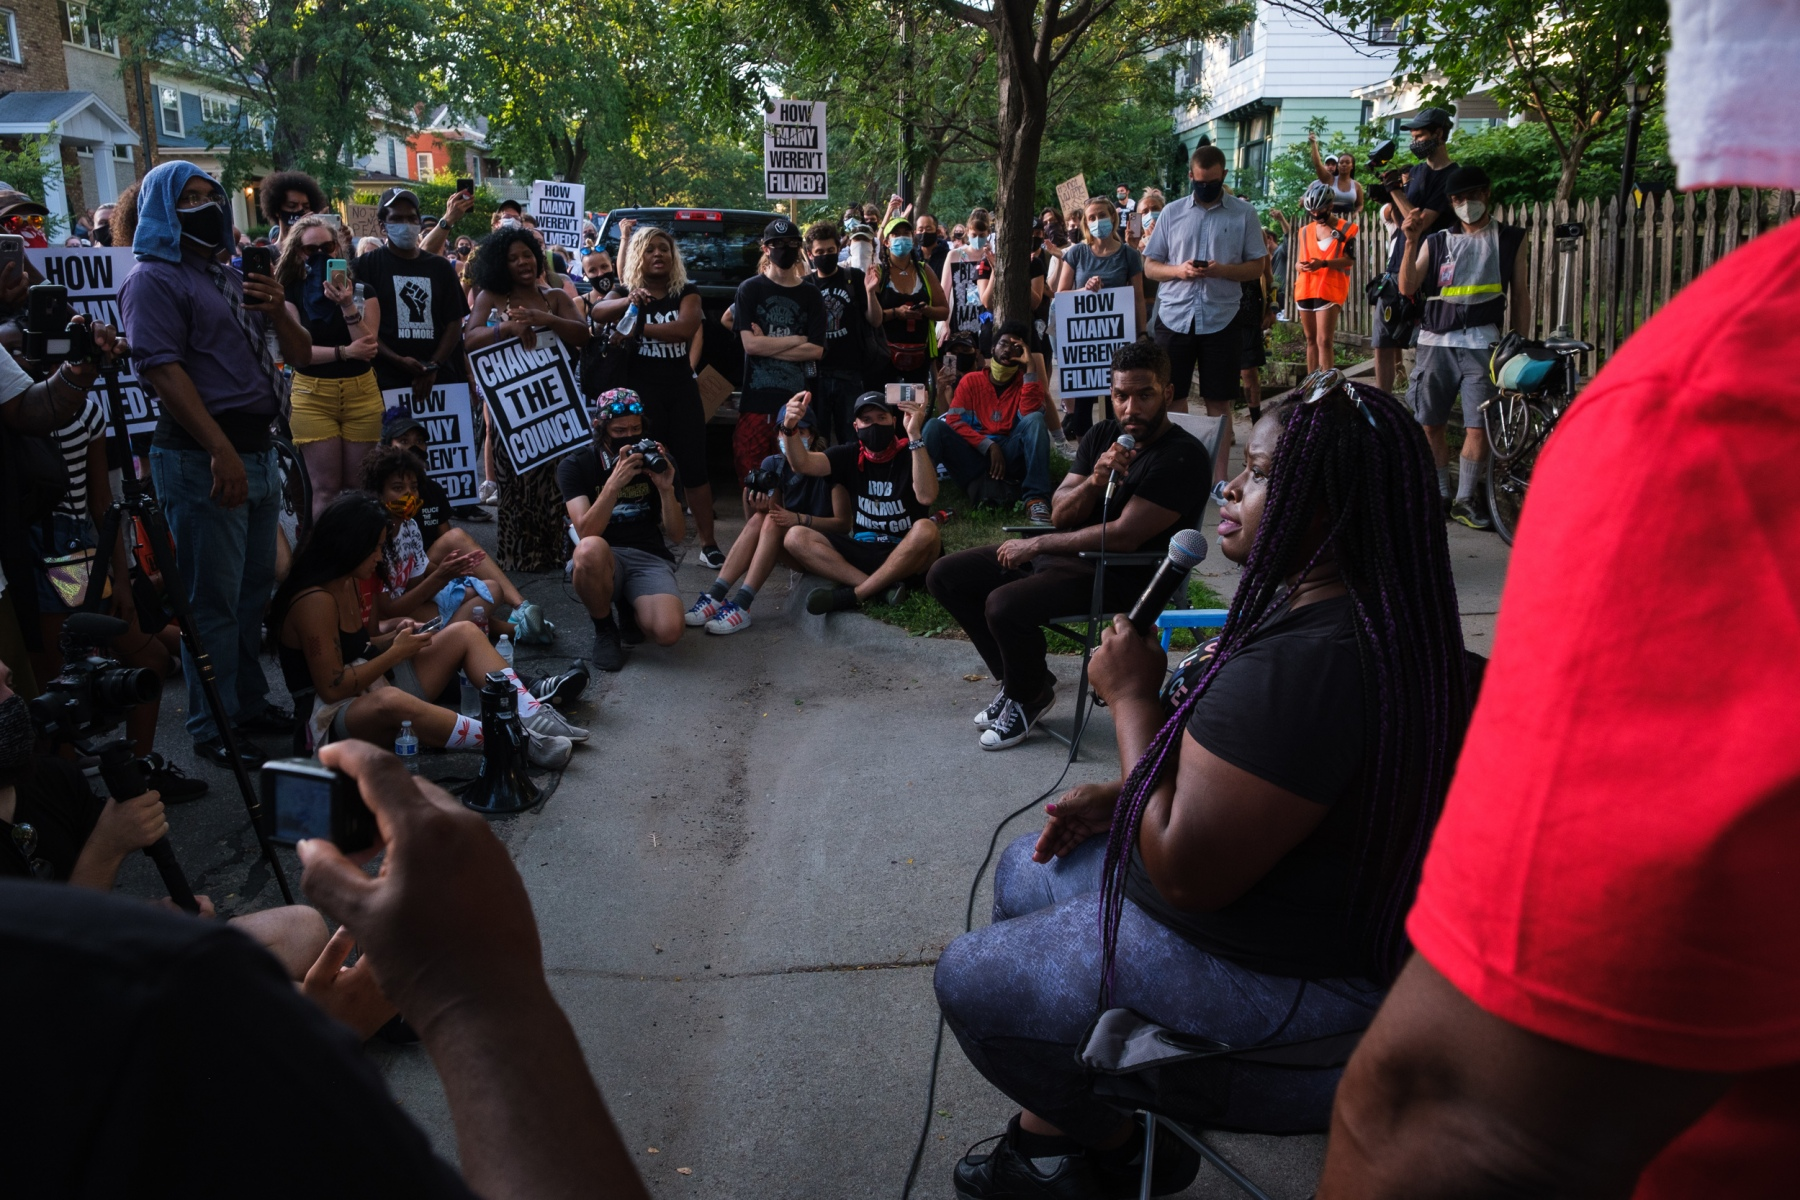 """Civil rights attorney Nekima Levy-Armstrong speaks at a de facto community forum held by racial justice organizers outside Minneapolis City Council President Lisa Bender's house on July 24, 2020. Levy-Armstrong and other longtime Twin Cities advocates against police brutality strongly criticized the city council's public commitment to """"end the Minneapolis Police Department"""", calling """"Defund the Police"""" an empty slogan meant to appease protestors without imposing concrete reform."""